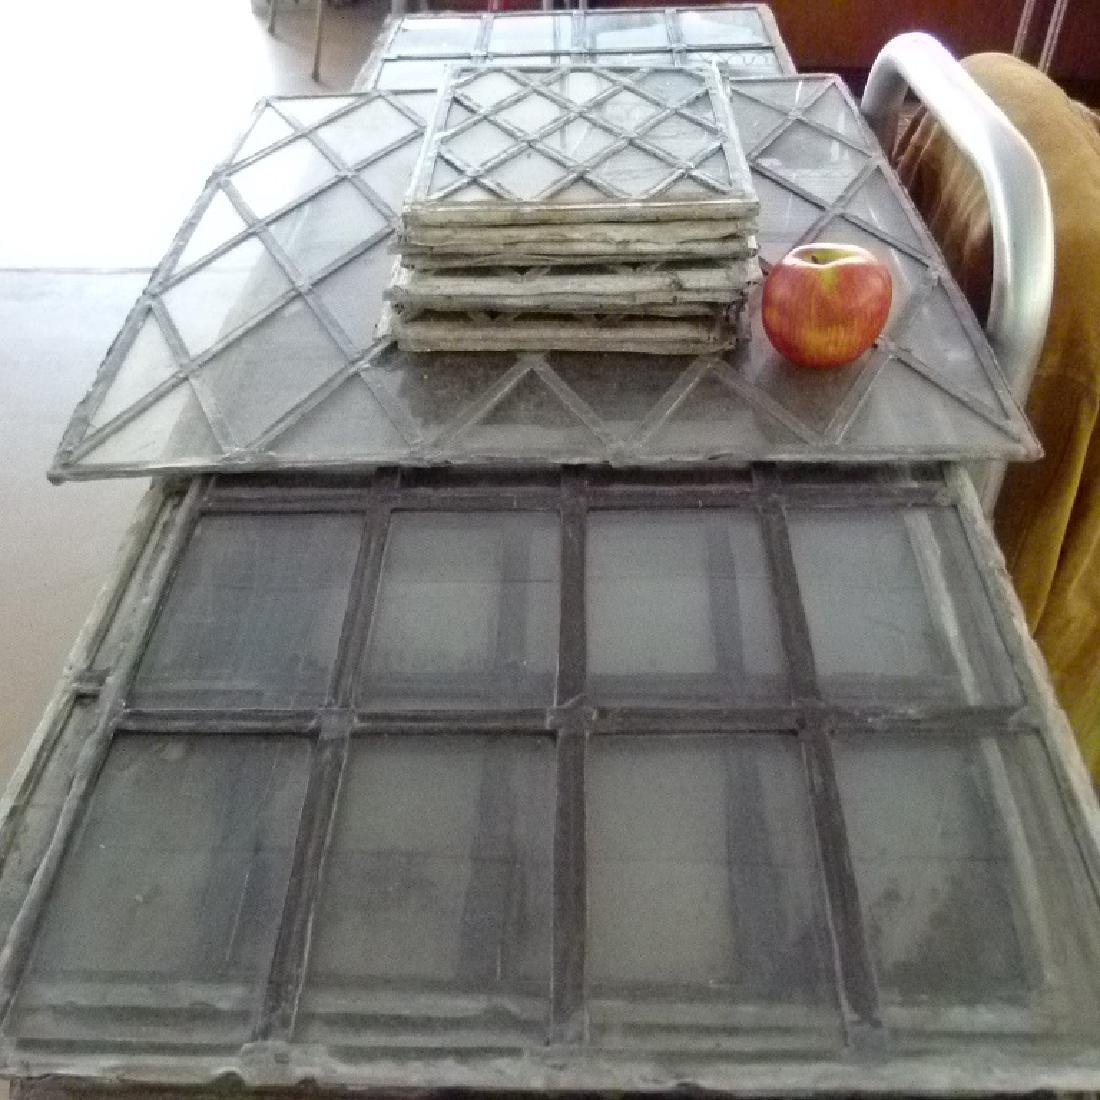 LOT ASSORT. MISSION STYLE LEADED GLASS WINDOWS - 2